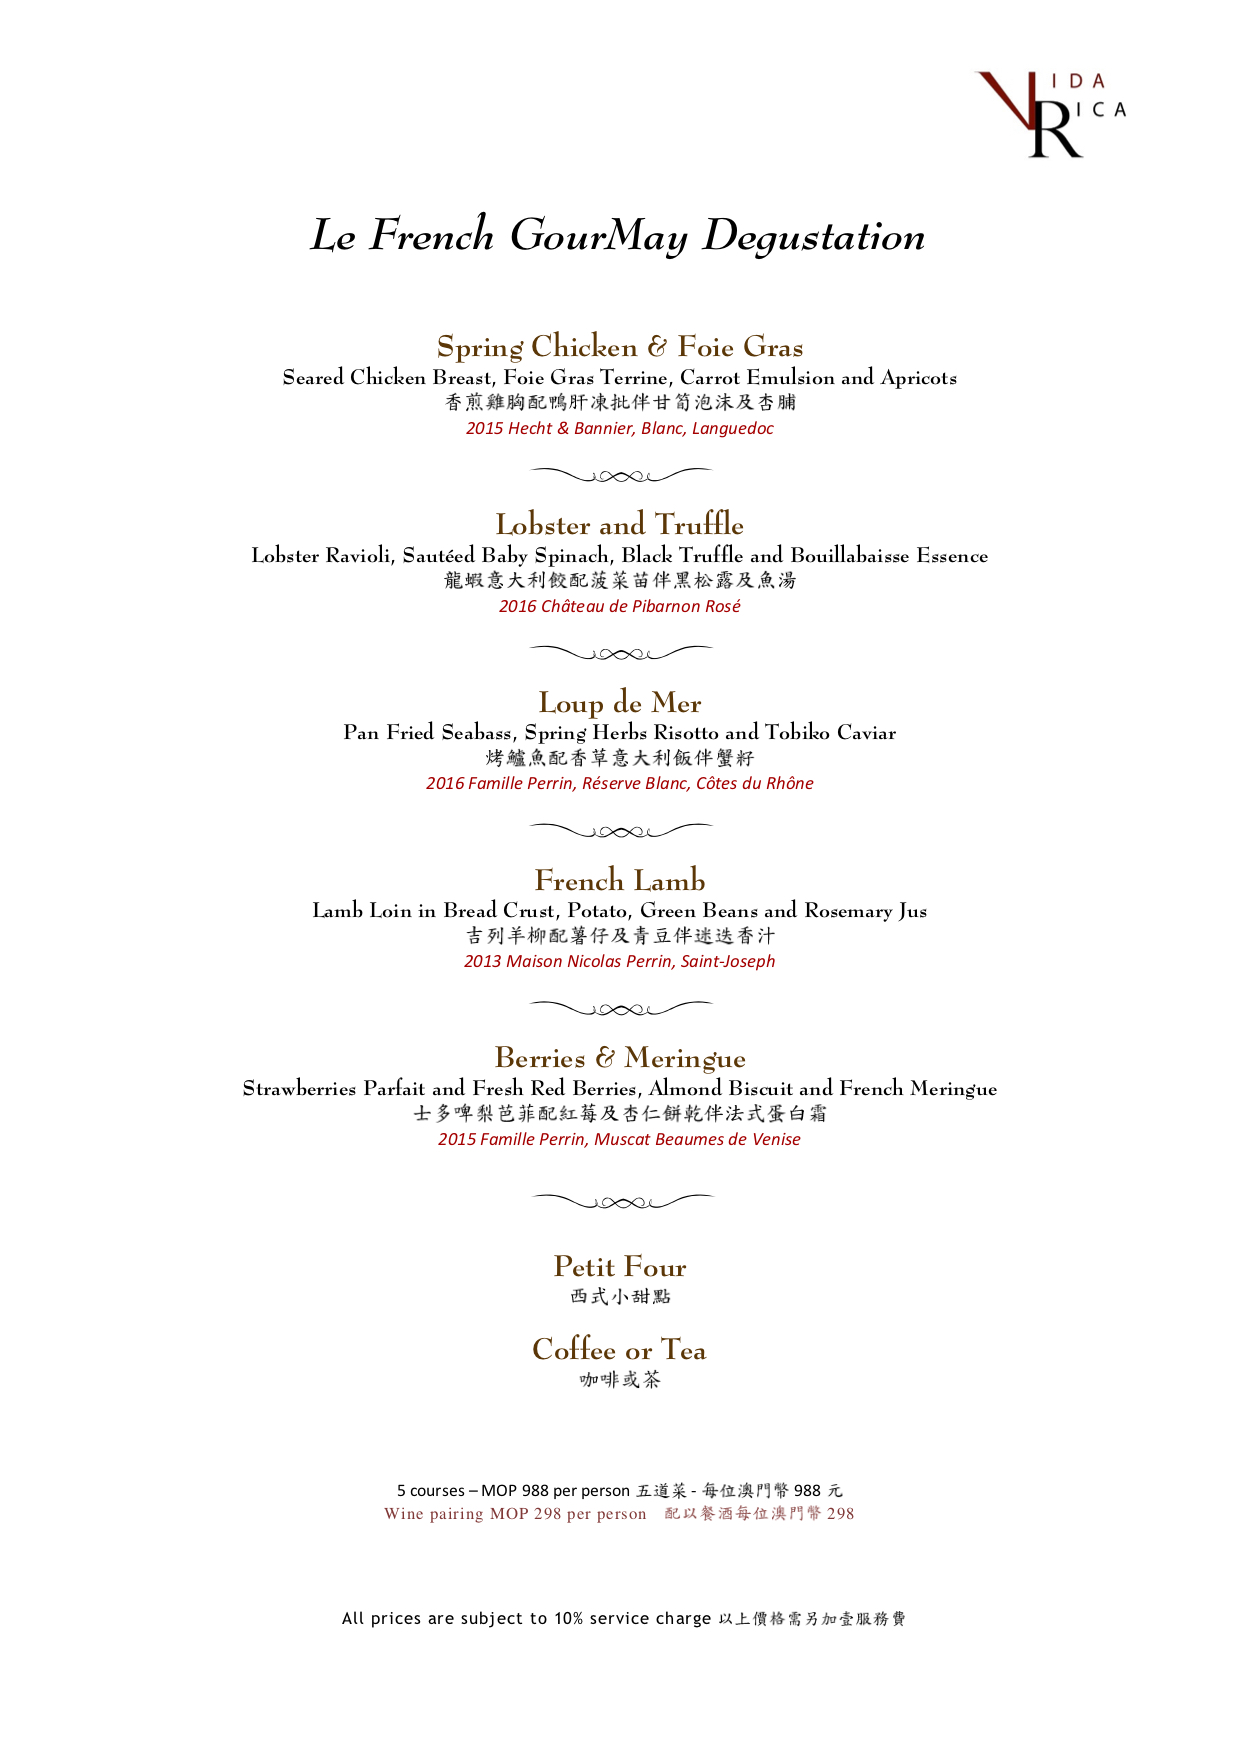 Vida Rica Restaurant_Le French GourMay Degustation Dinner Menu_2018-05-01